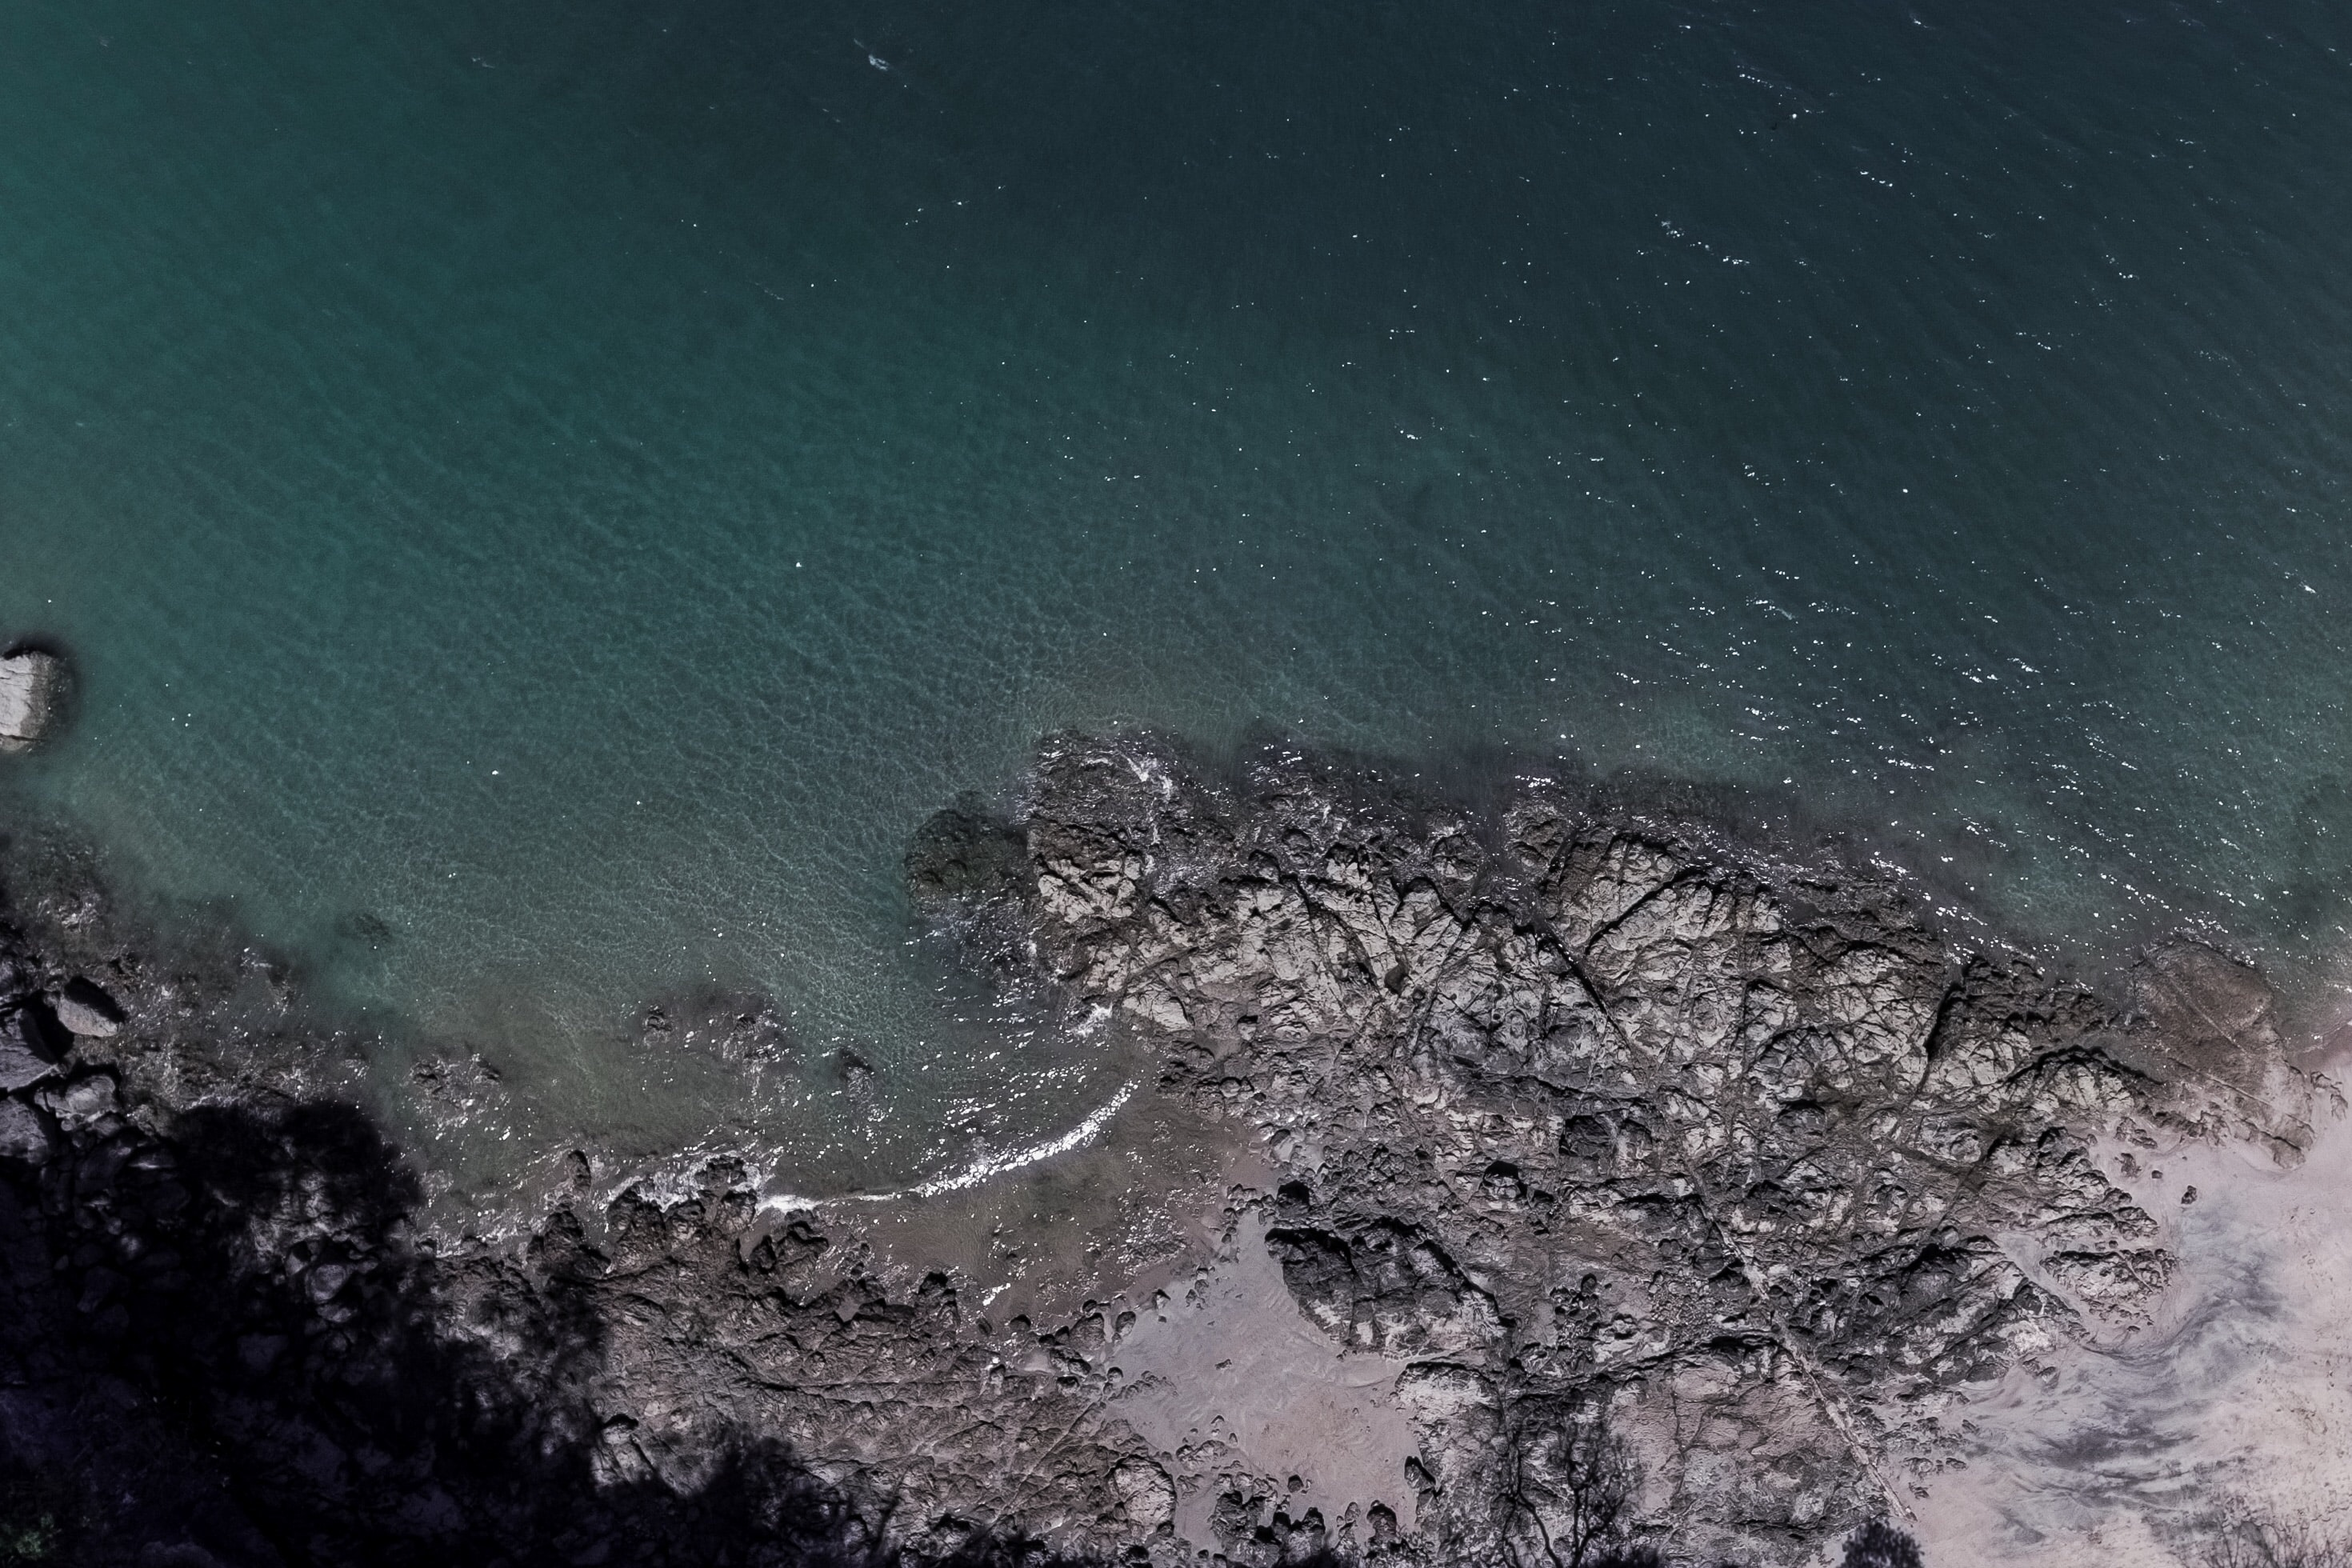 Drone view of a rocky coast by the ocean in FlamingoCostaRica